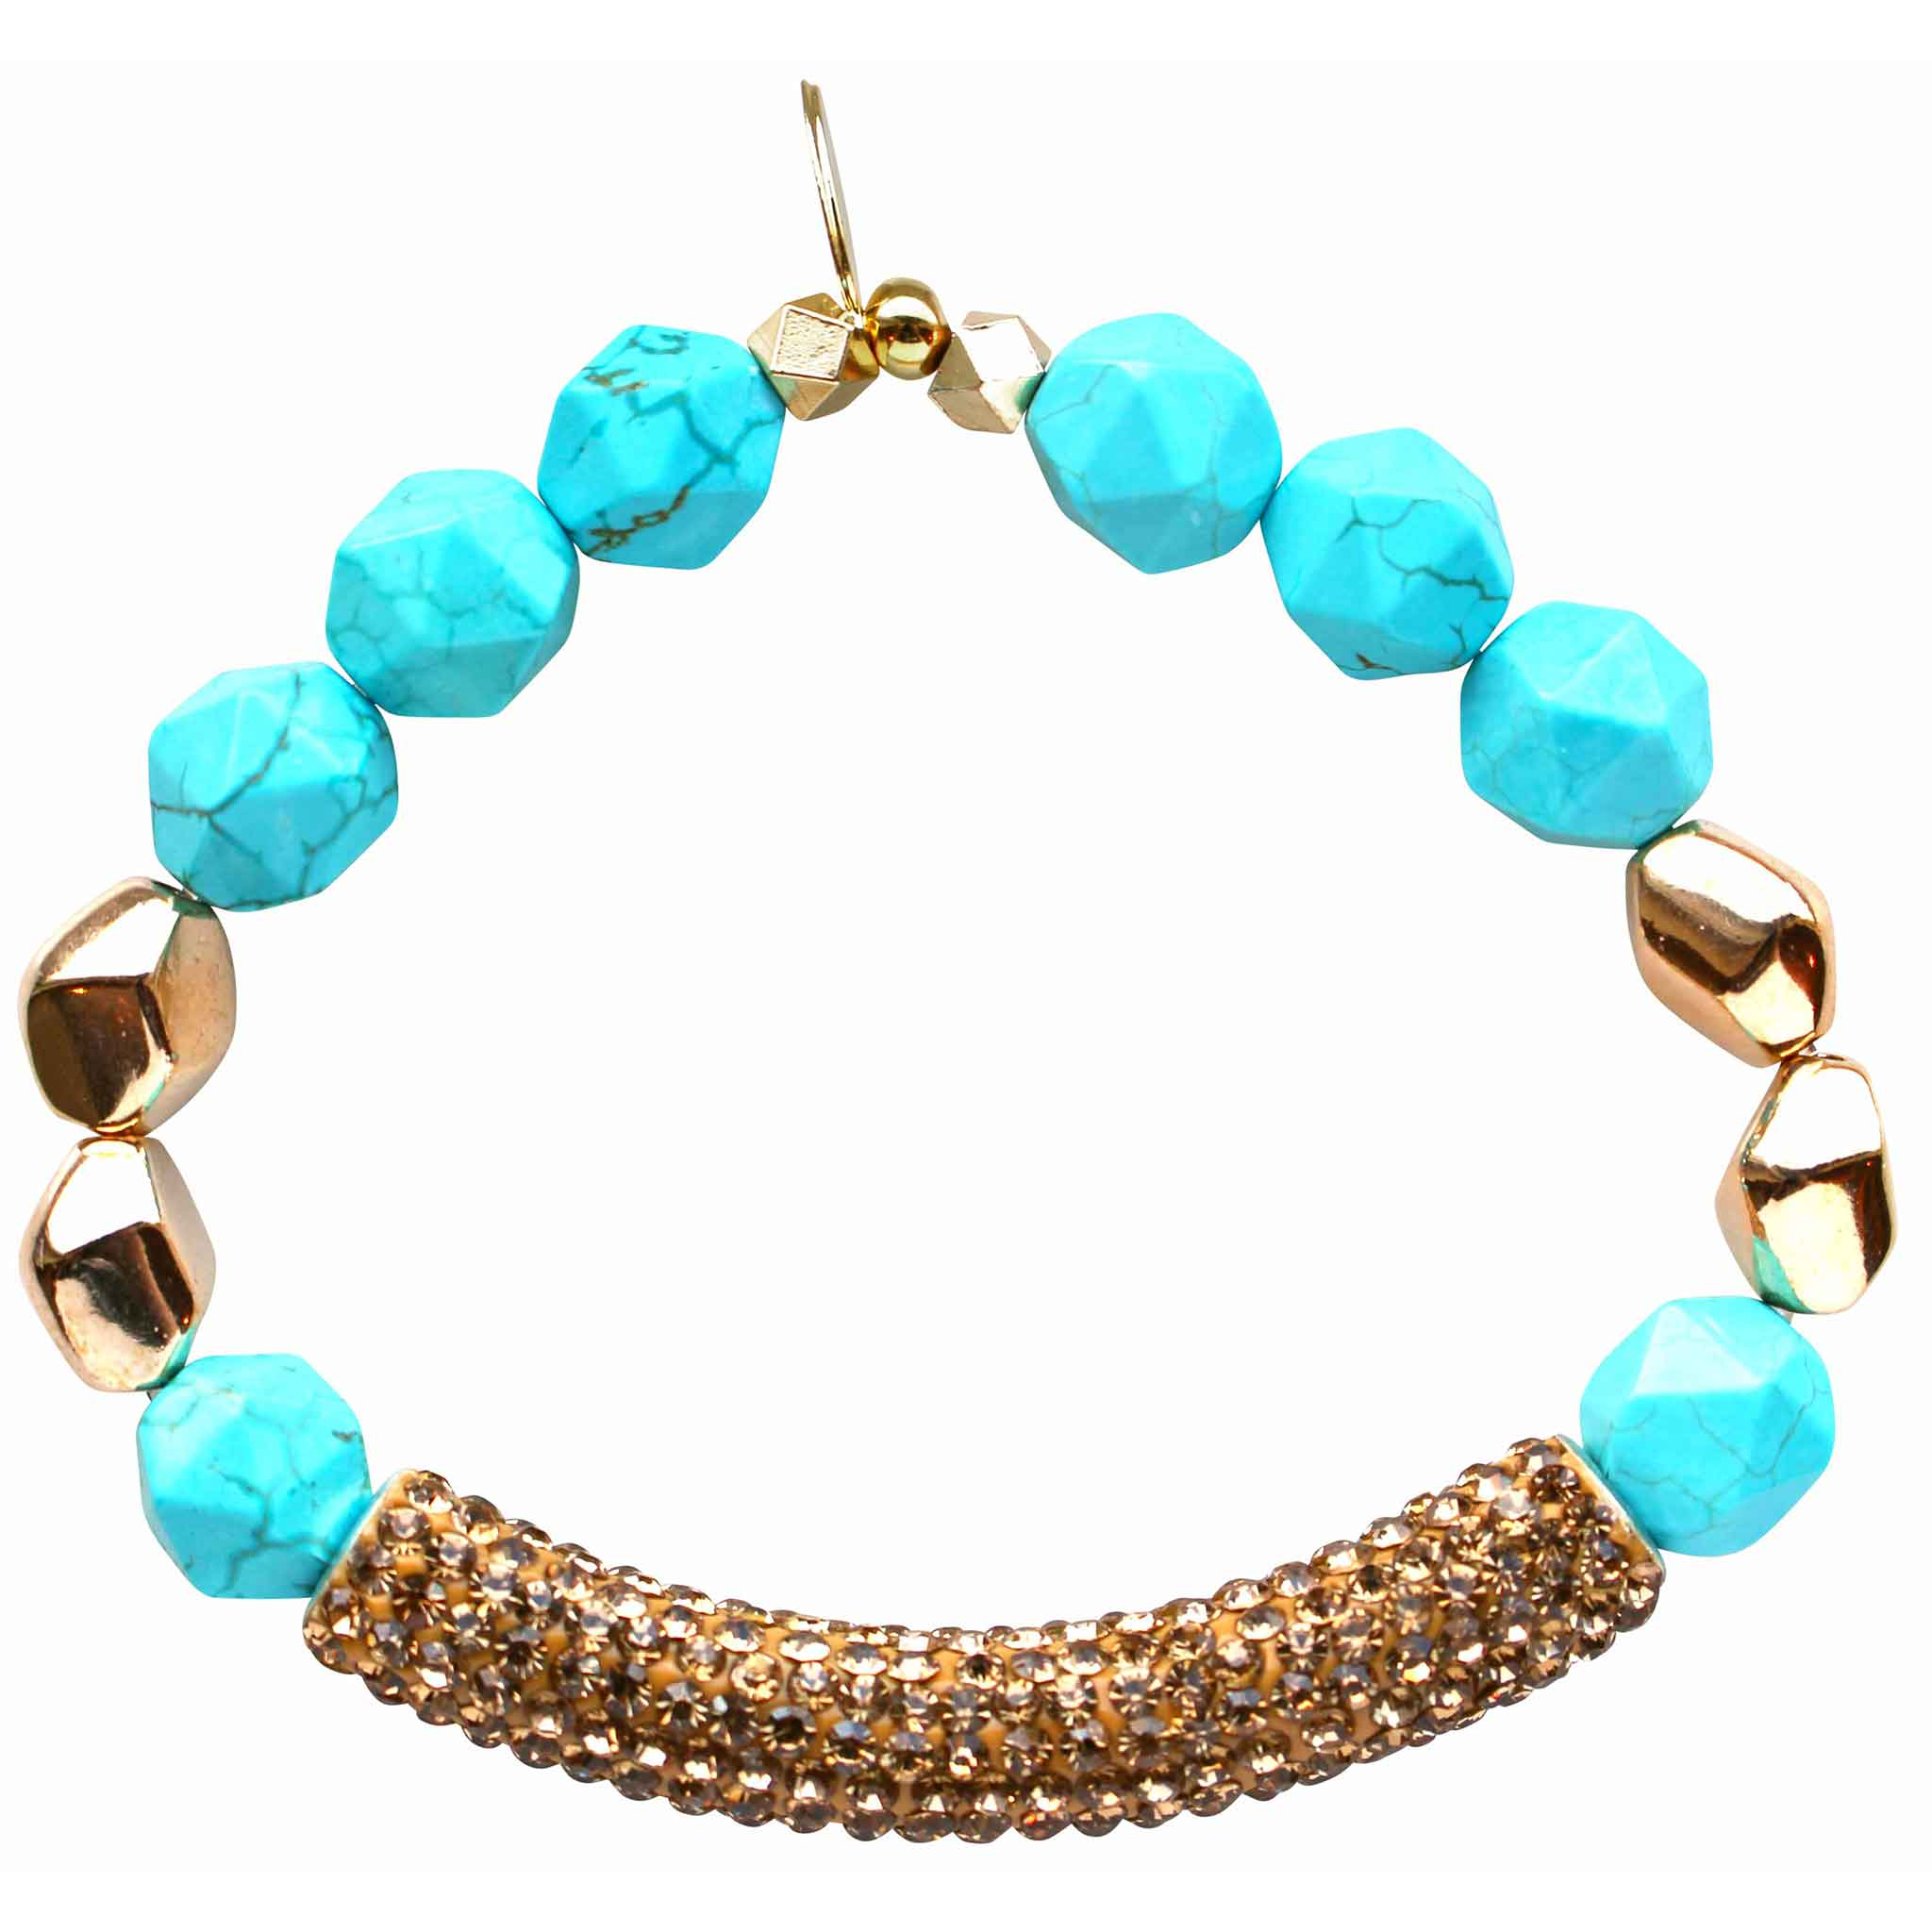 Beaded stretch bracelet with gold pave cubic zirconia (CZ) bar turquoise and gold plated beads